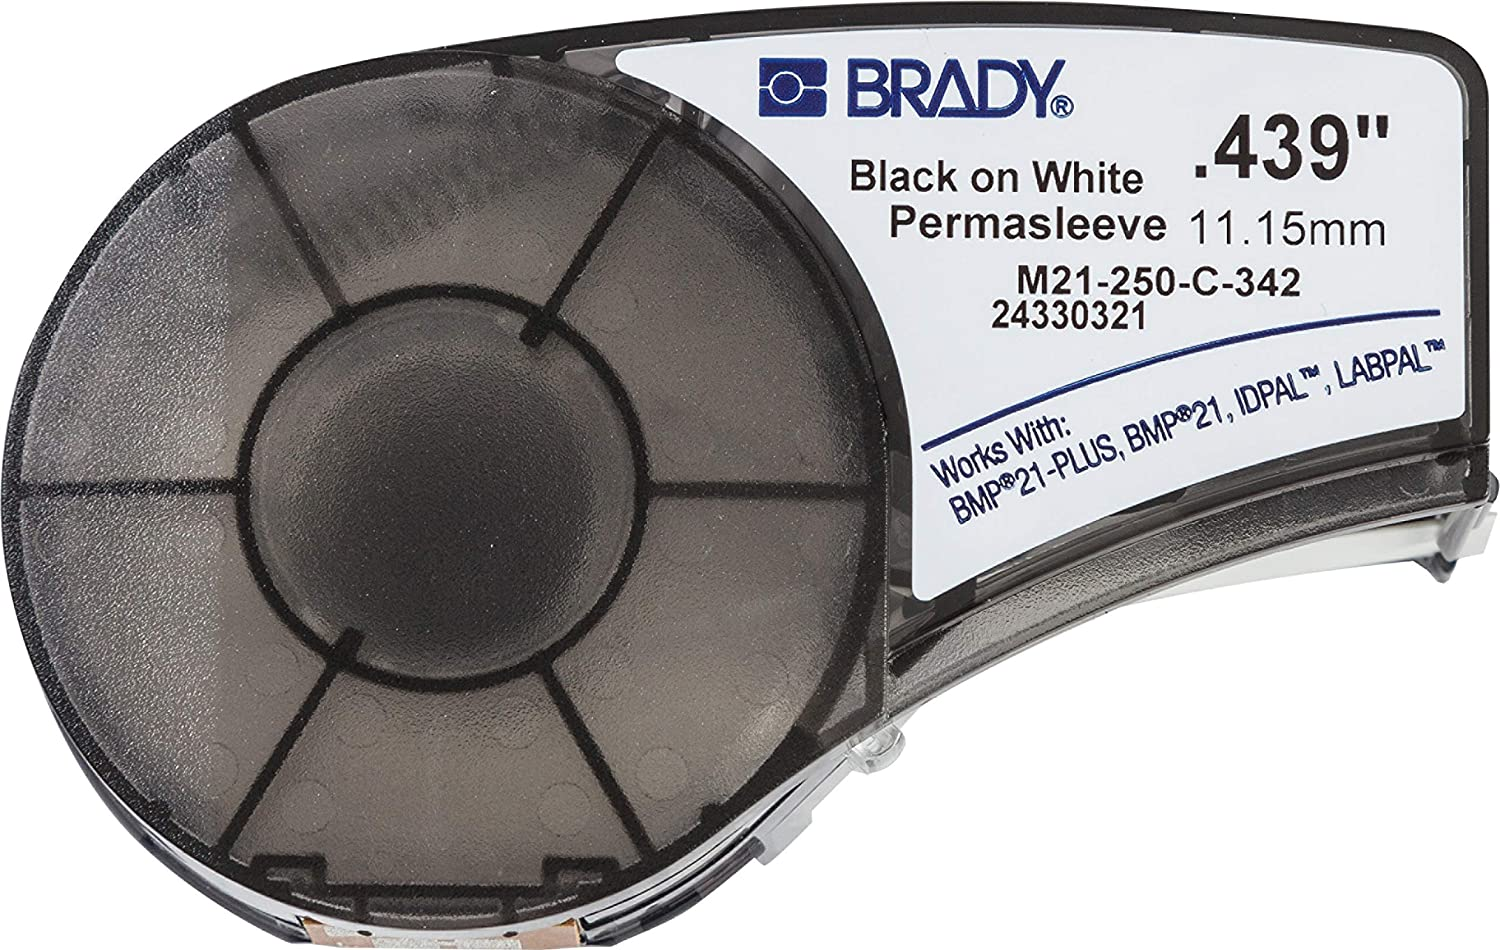 """Brady PermaSleeve Heat-Shrink Polyolefin Wire Marking Sleeves (M21-250-C-342) - Black On White Sleeves - Compatible with BMP21-PLUS Label Printer, ID PAL, and LABPAL Printers - 7' Length, 0.439"""" Width"""